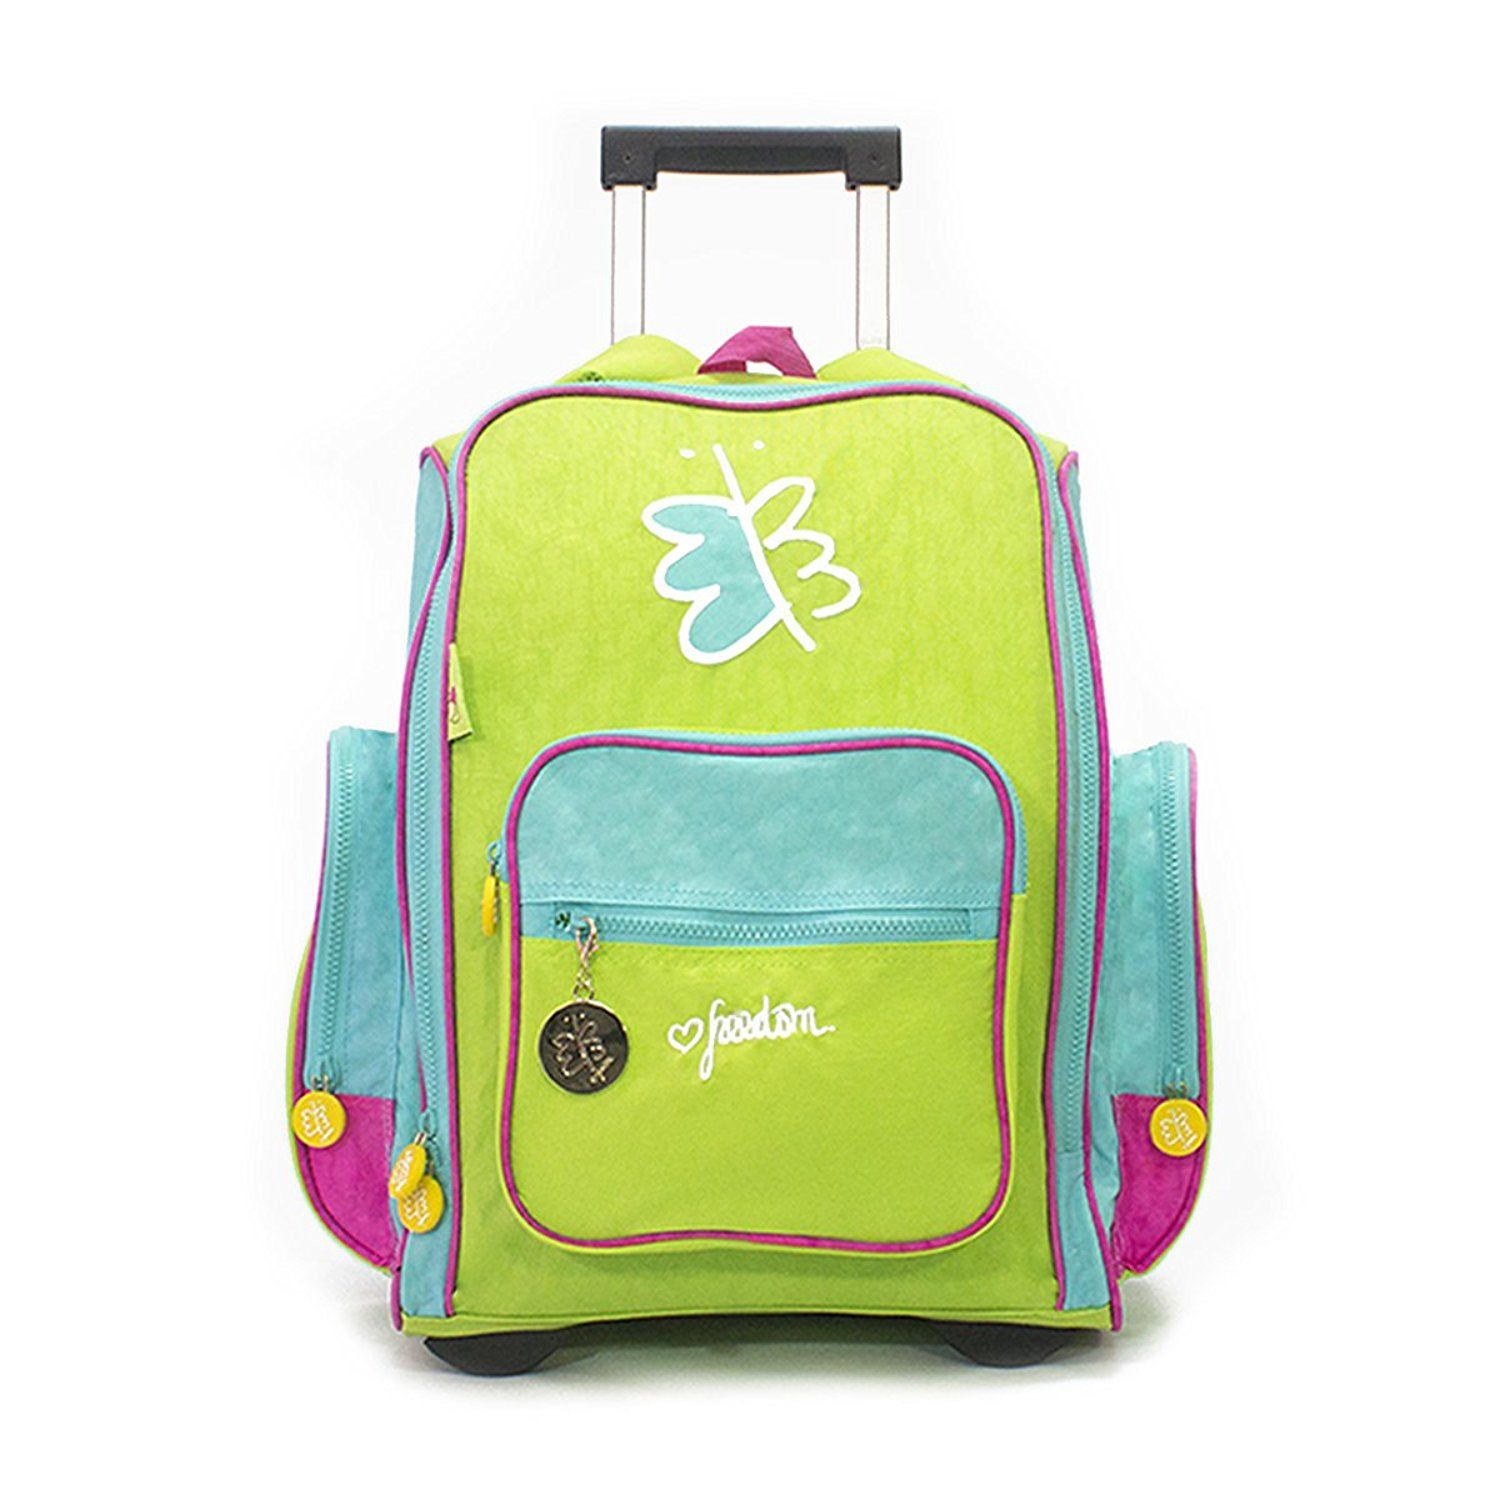 Biglove Rolling Kids Backpack Freedom Hurry Check out this